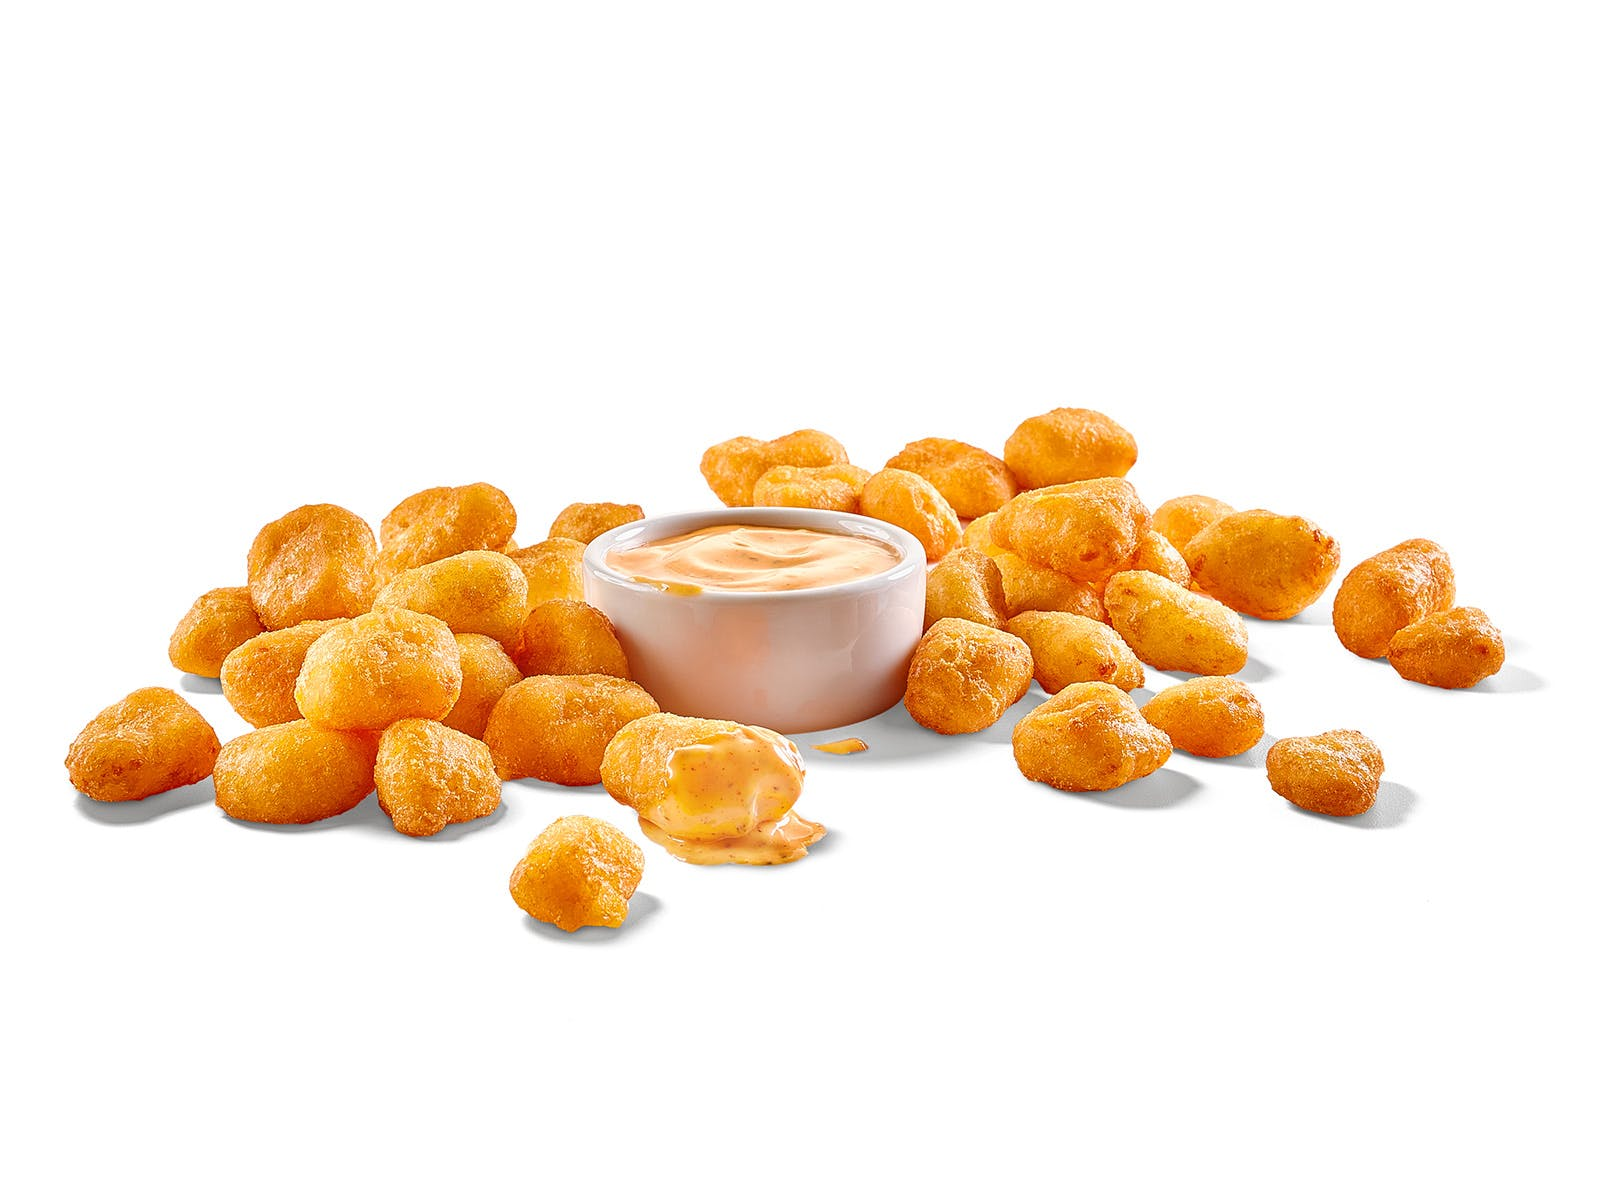 Regular Cheddar Cheese Curds from Buffalo Wild Wings - Lawrence (522) in Lawrence, KS